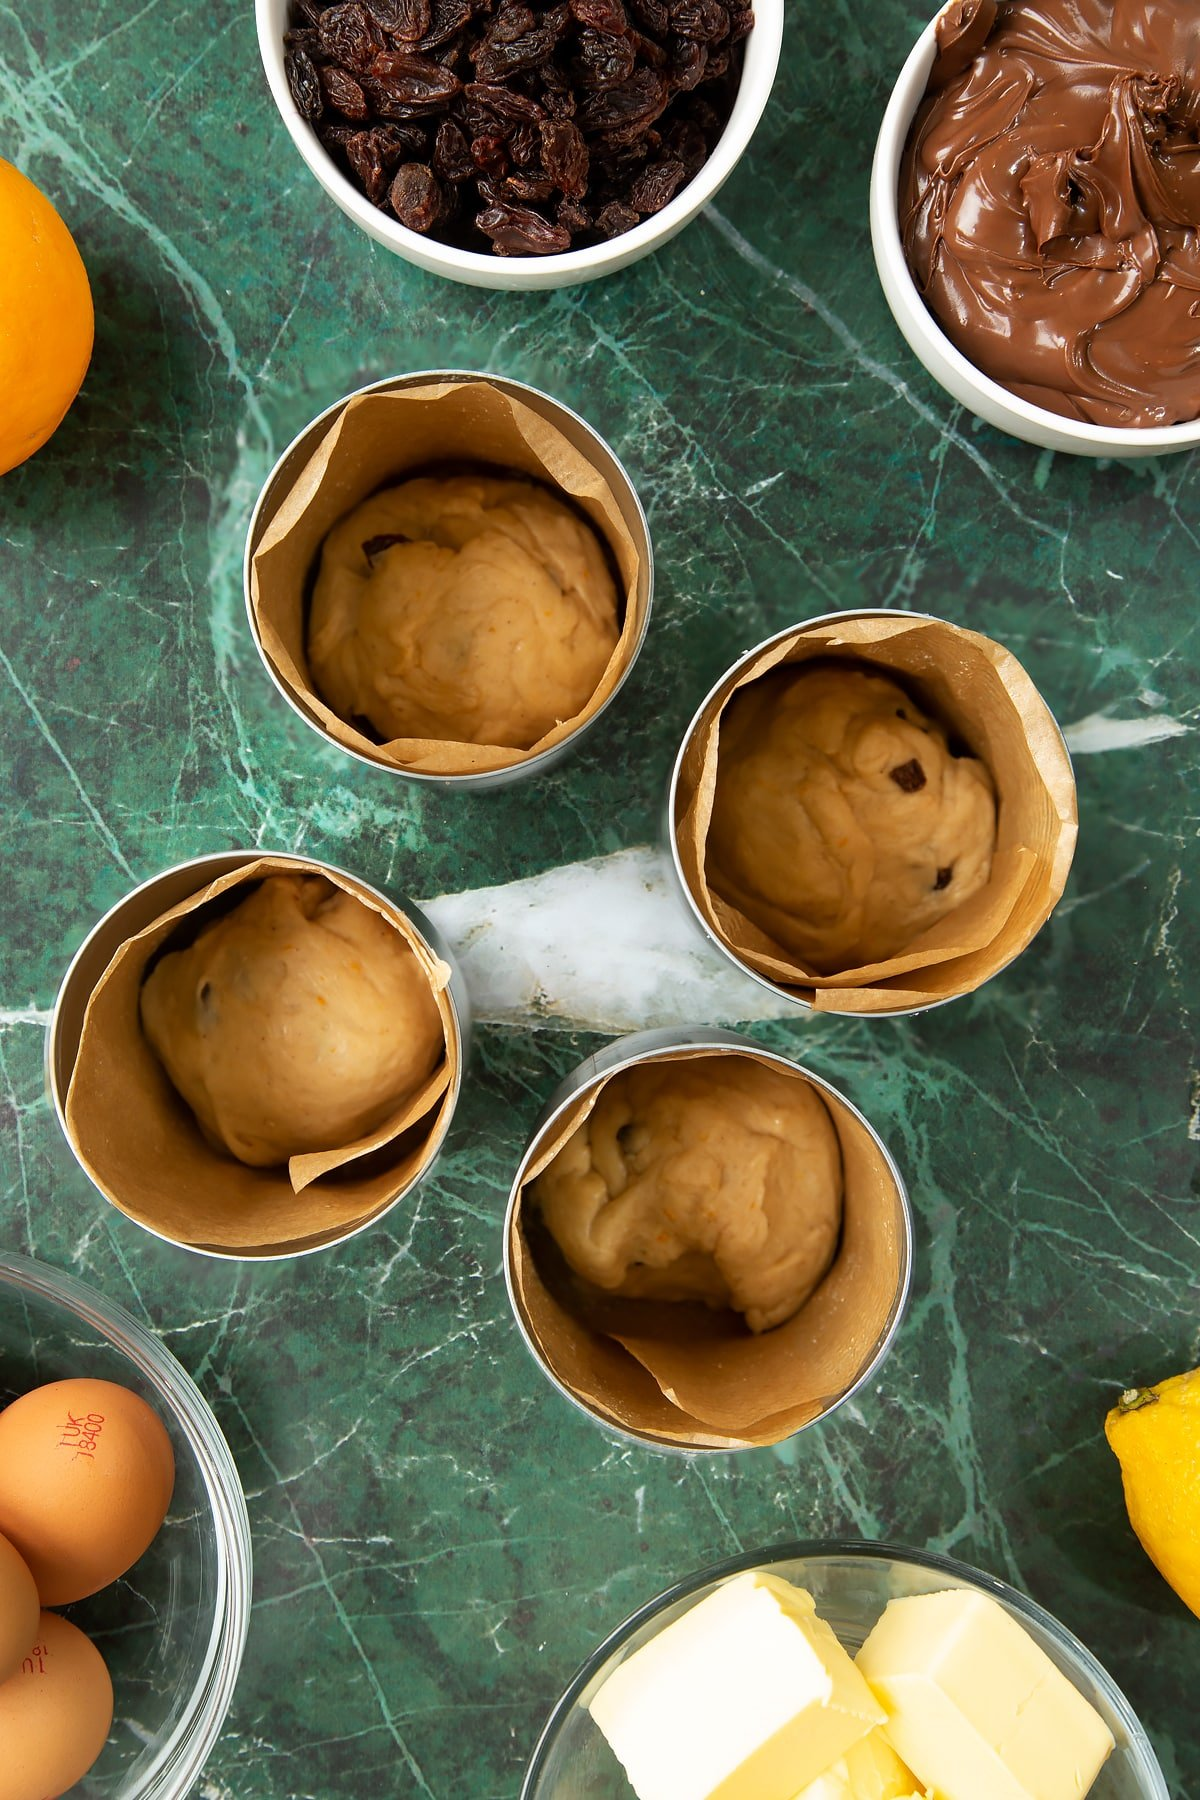 4 lined tin cans with a little dough at the bottom of eacch. Ingredients to make Nutella panettone surround the cans.